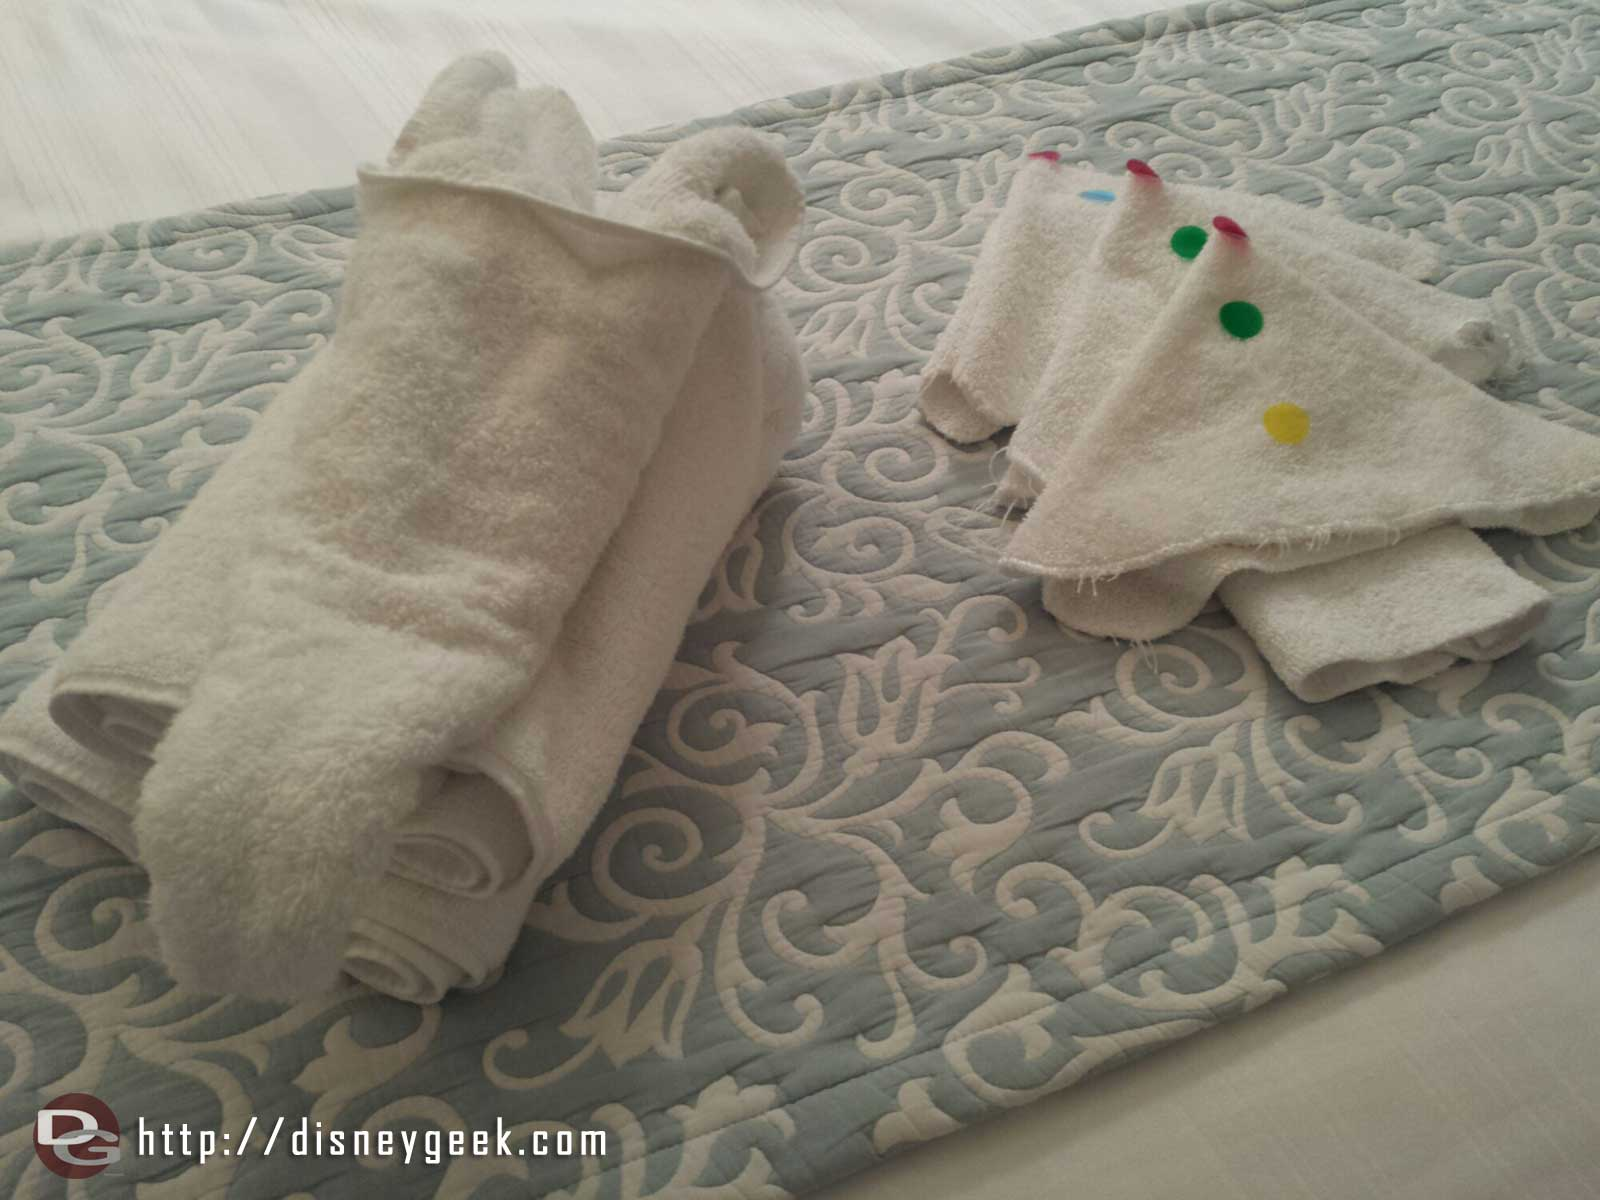 A couple of towel creations greeted us this evening back in the room.. #WDW